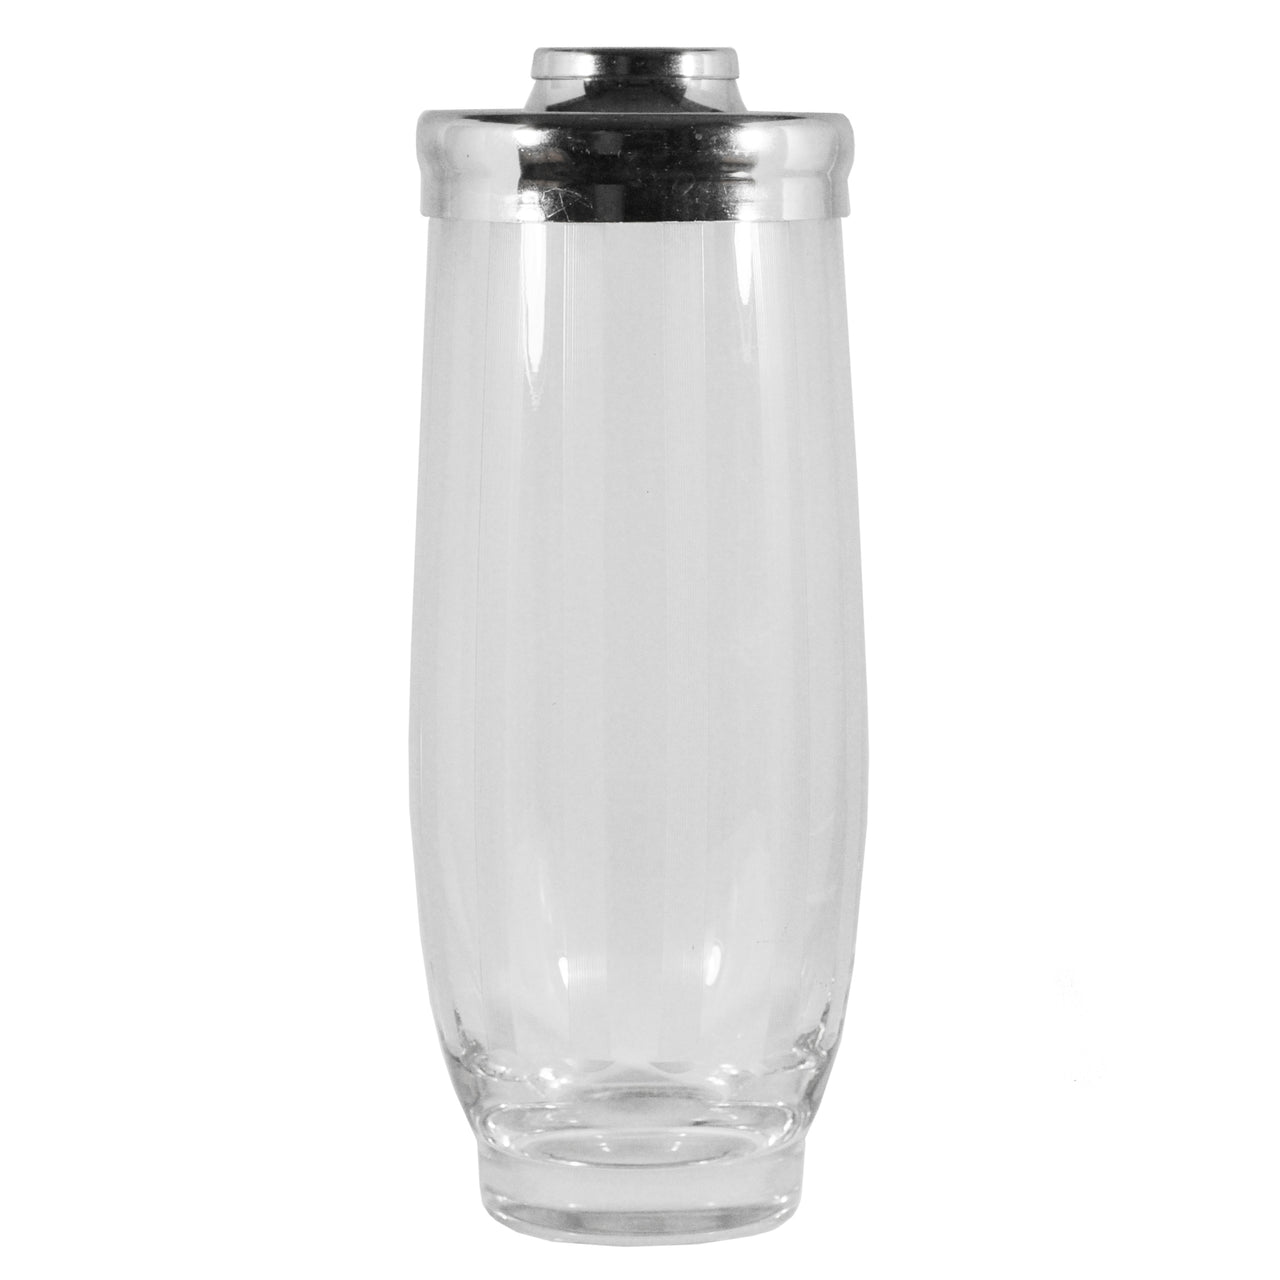 Vintage Rounded Etched Lines Glass Cocktail Shaker | The Hour Shop